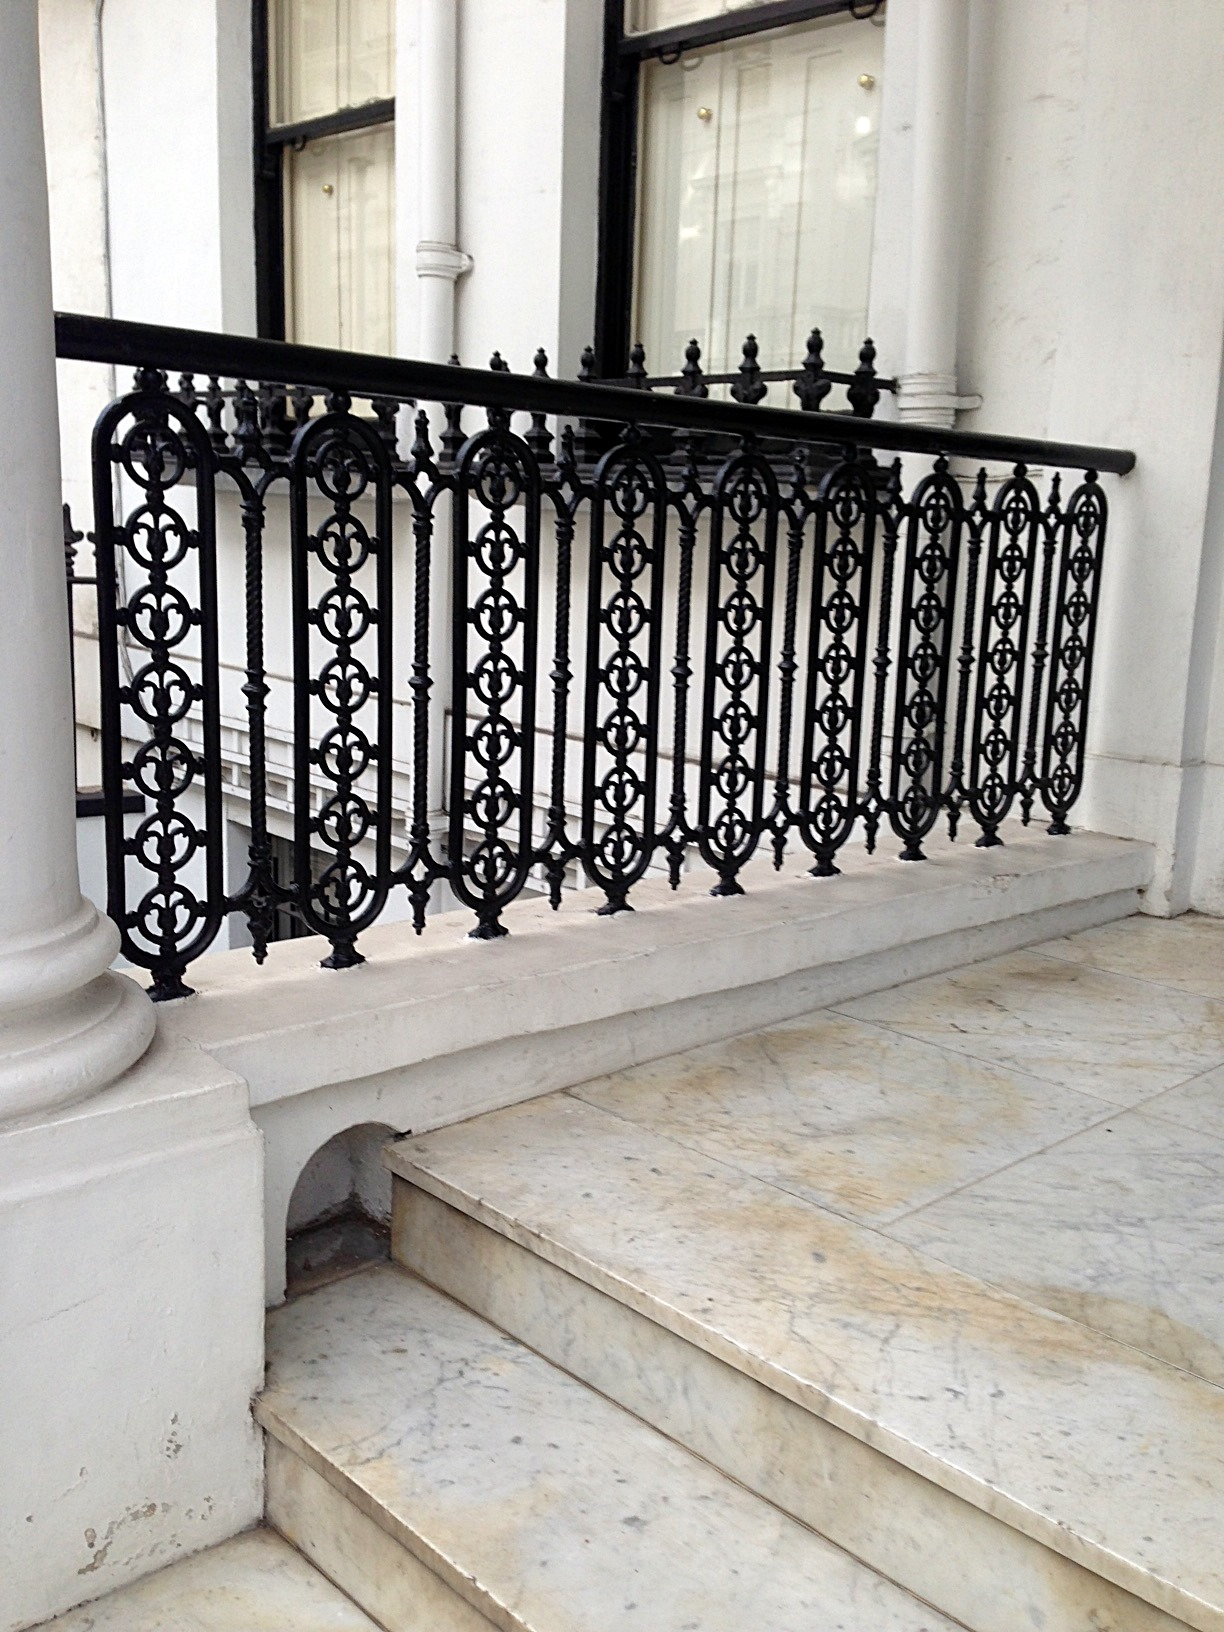 Kensington victorian wrought iron heritage rails side panels and foot scrape London (4)